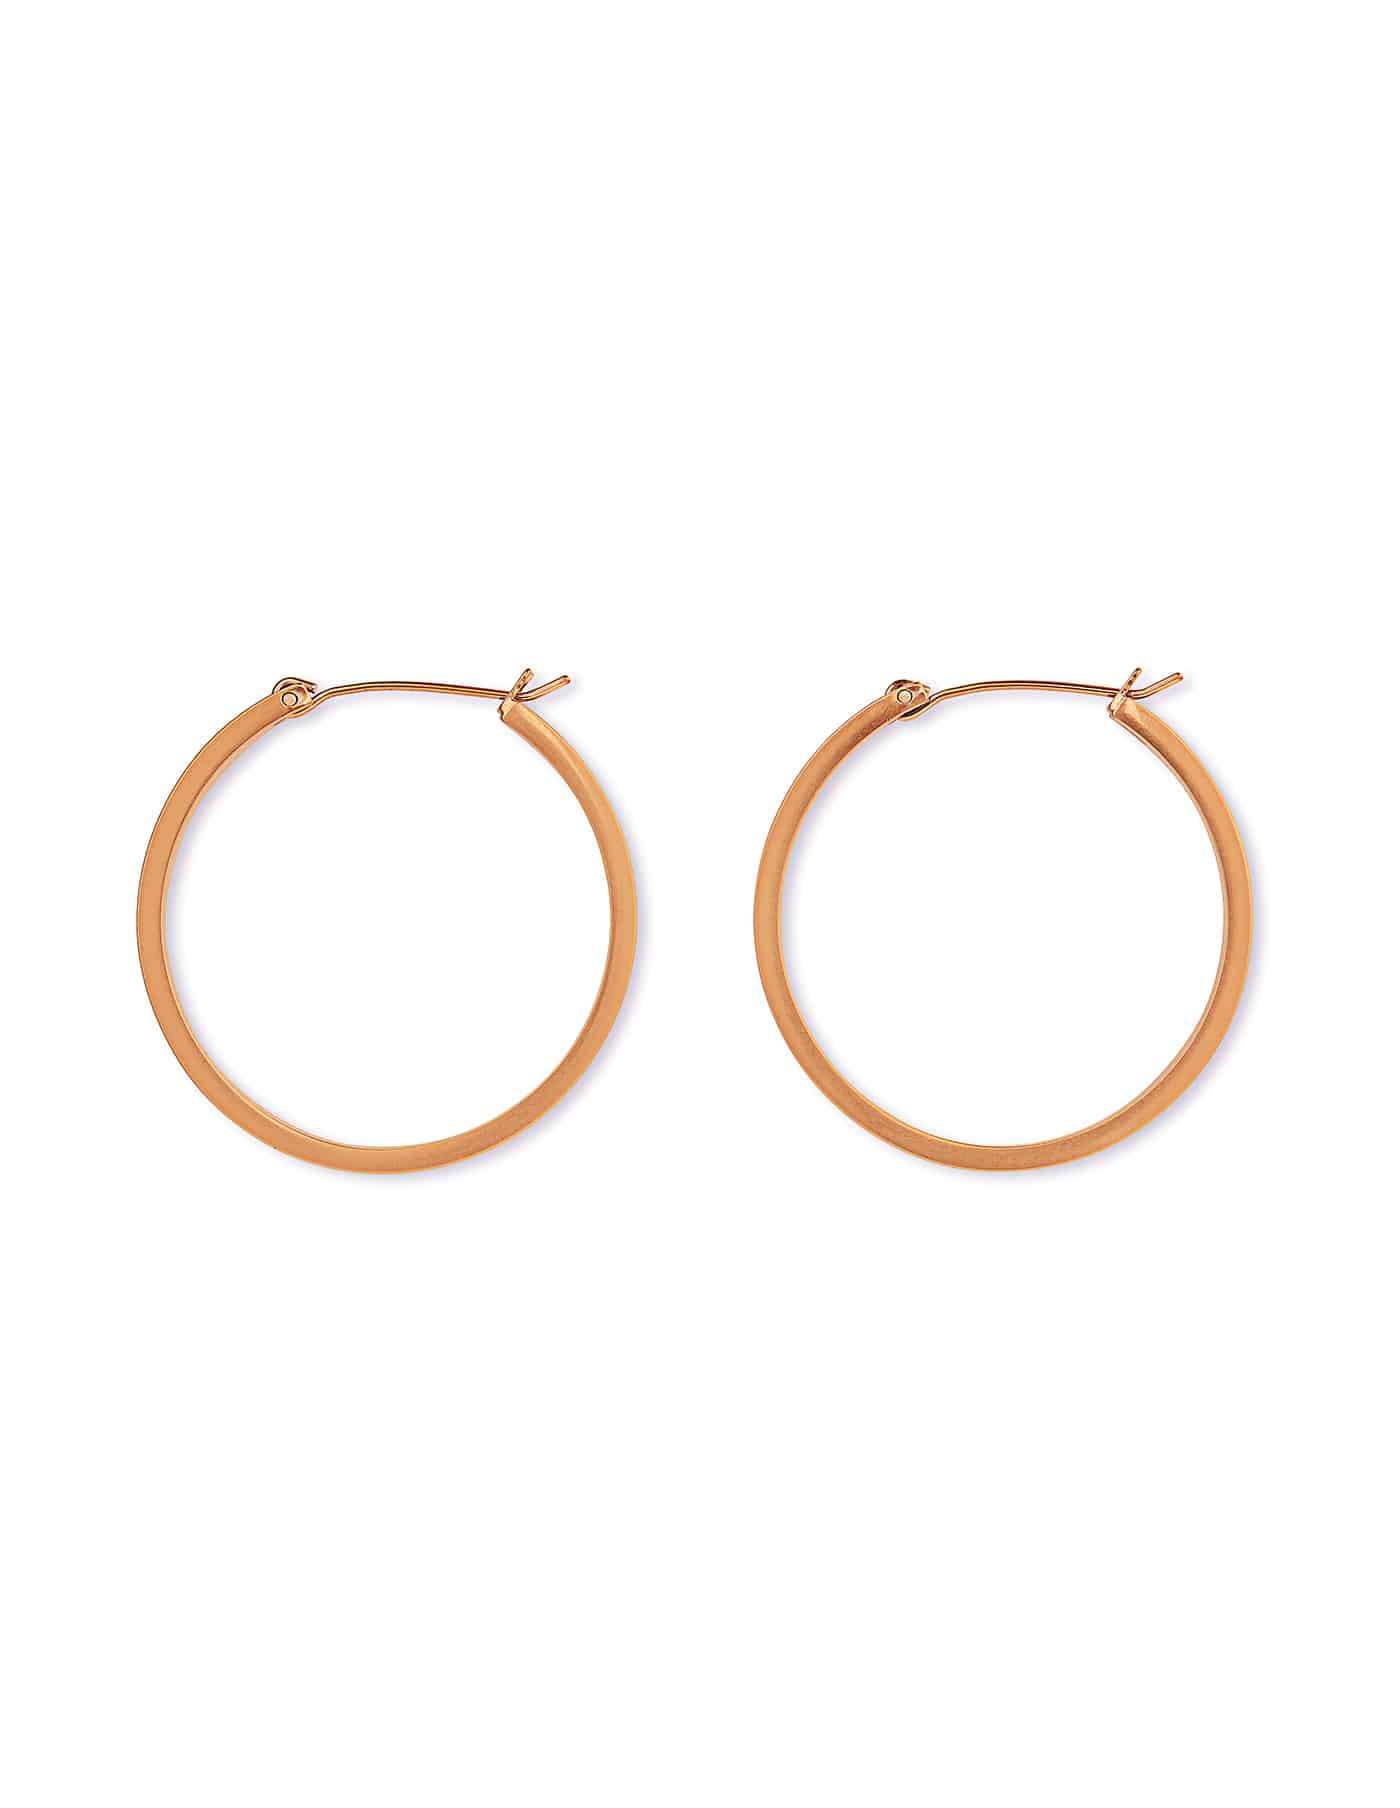 Matte Rose Gold Hoop Earrings, Medium